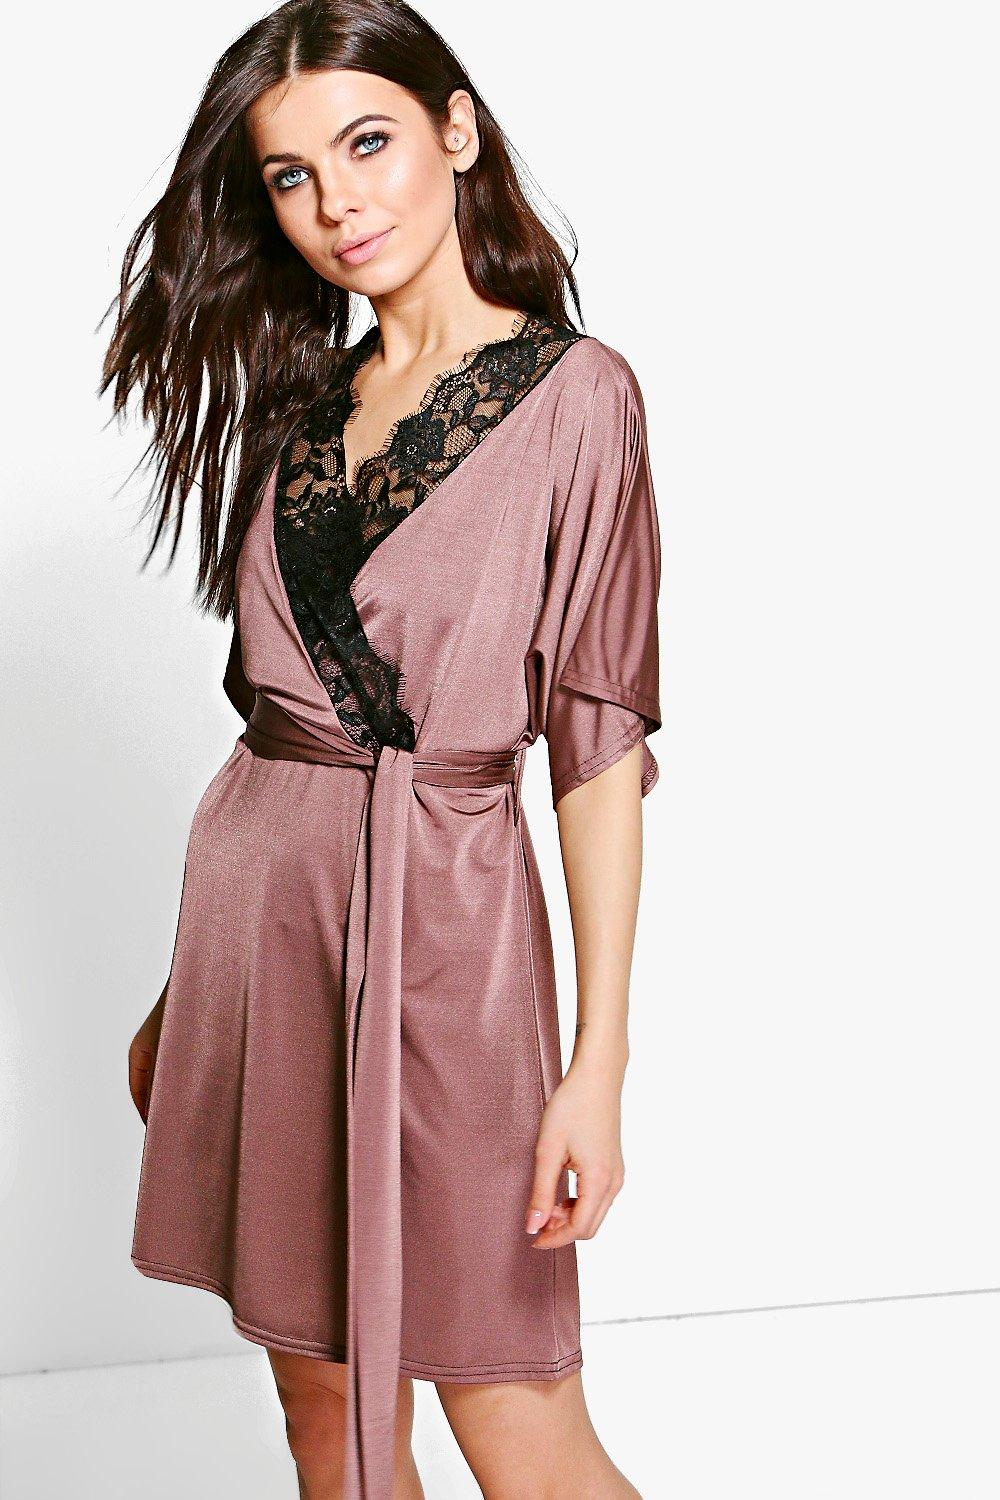 Designer dresses on sale | Shop luxury, high end fashion dress brands for women with huge outlet discounts of up to 70% off. Buy quality ladies designs for all figure types & occasions at THE OUTNET.